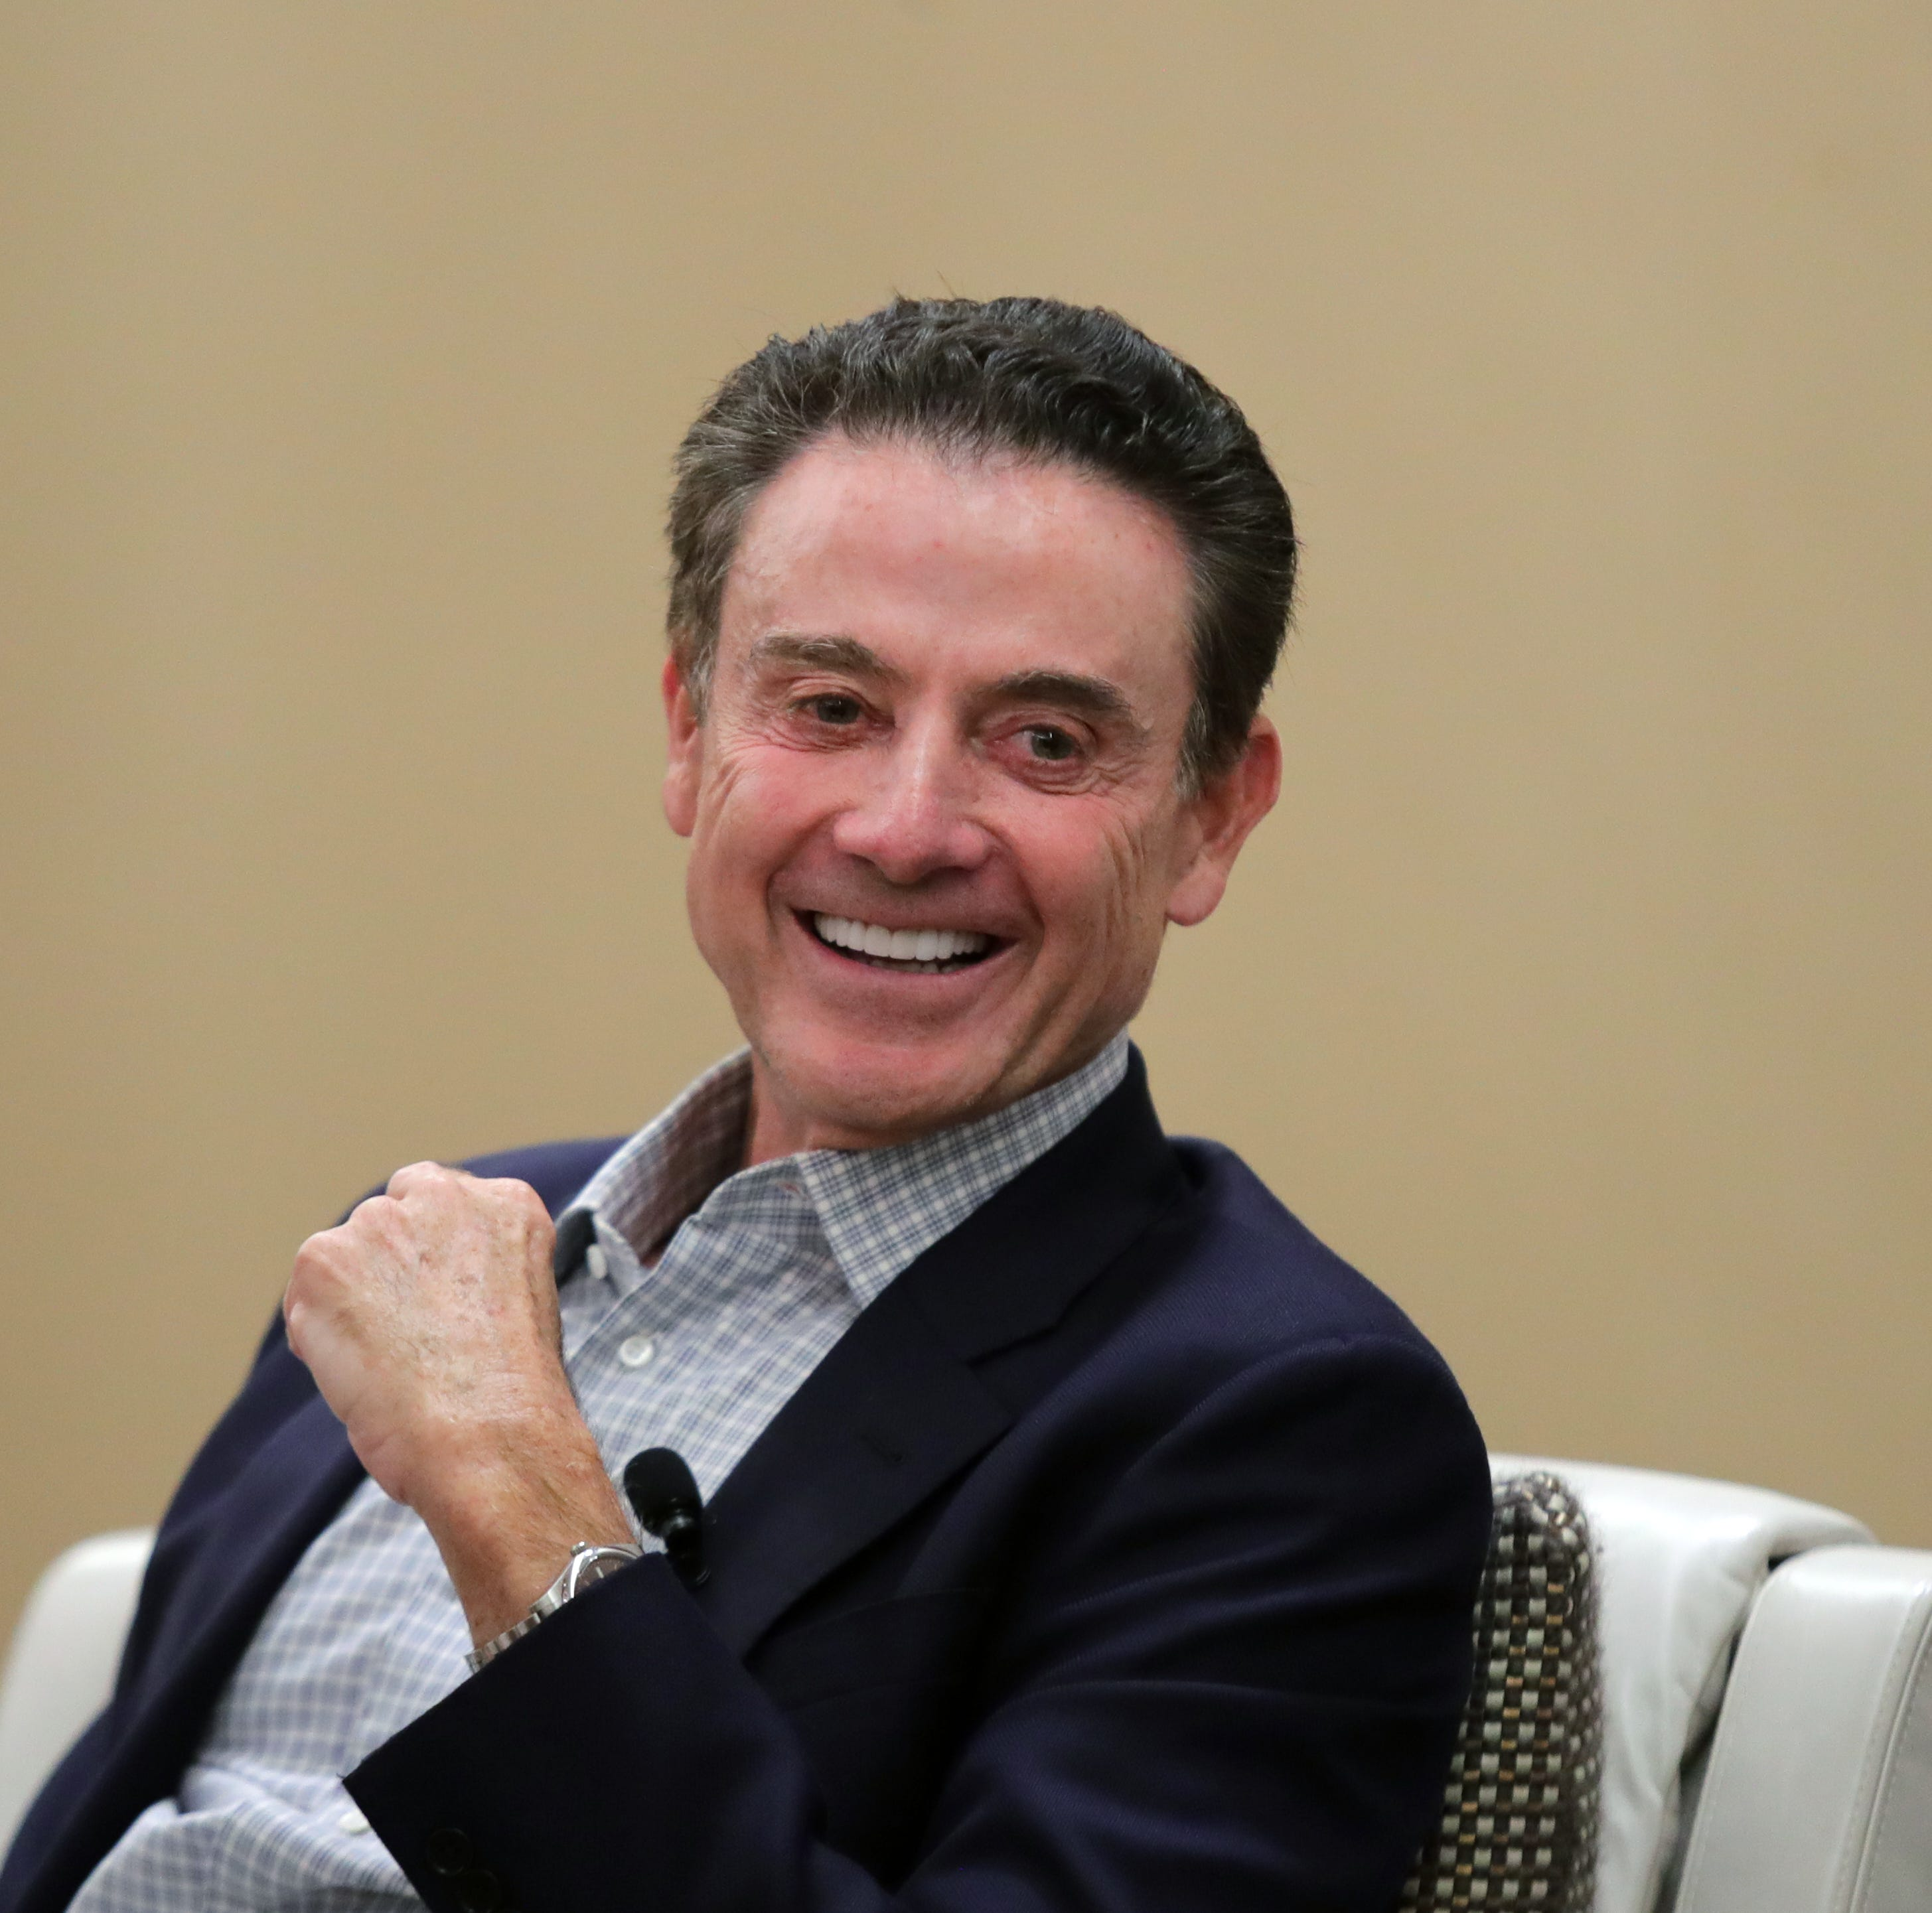 Former Louisville coach Rick Pitino is resigned his battle 'can't be won'